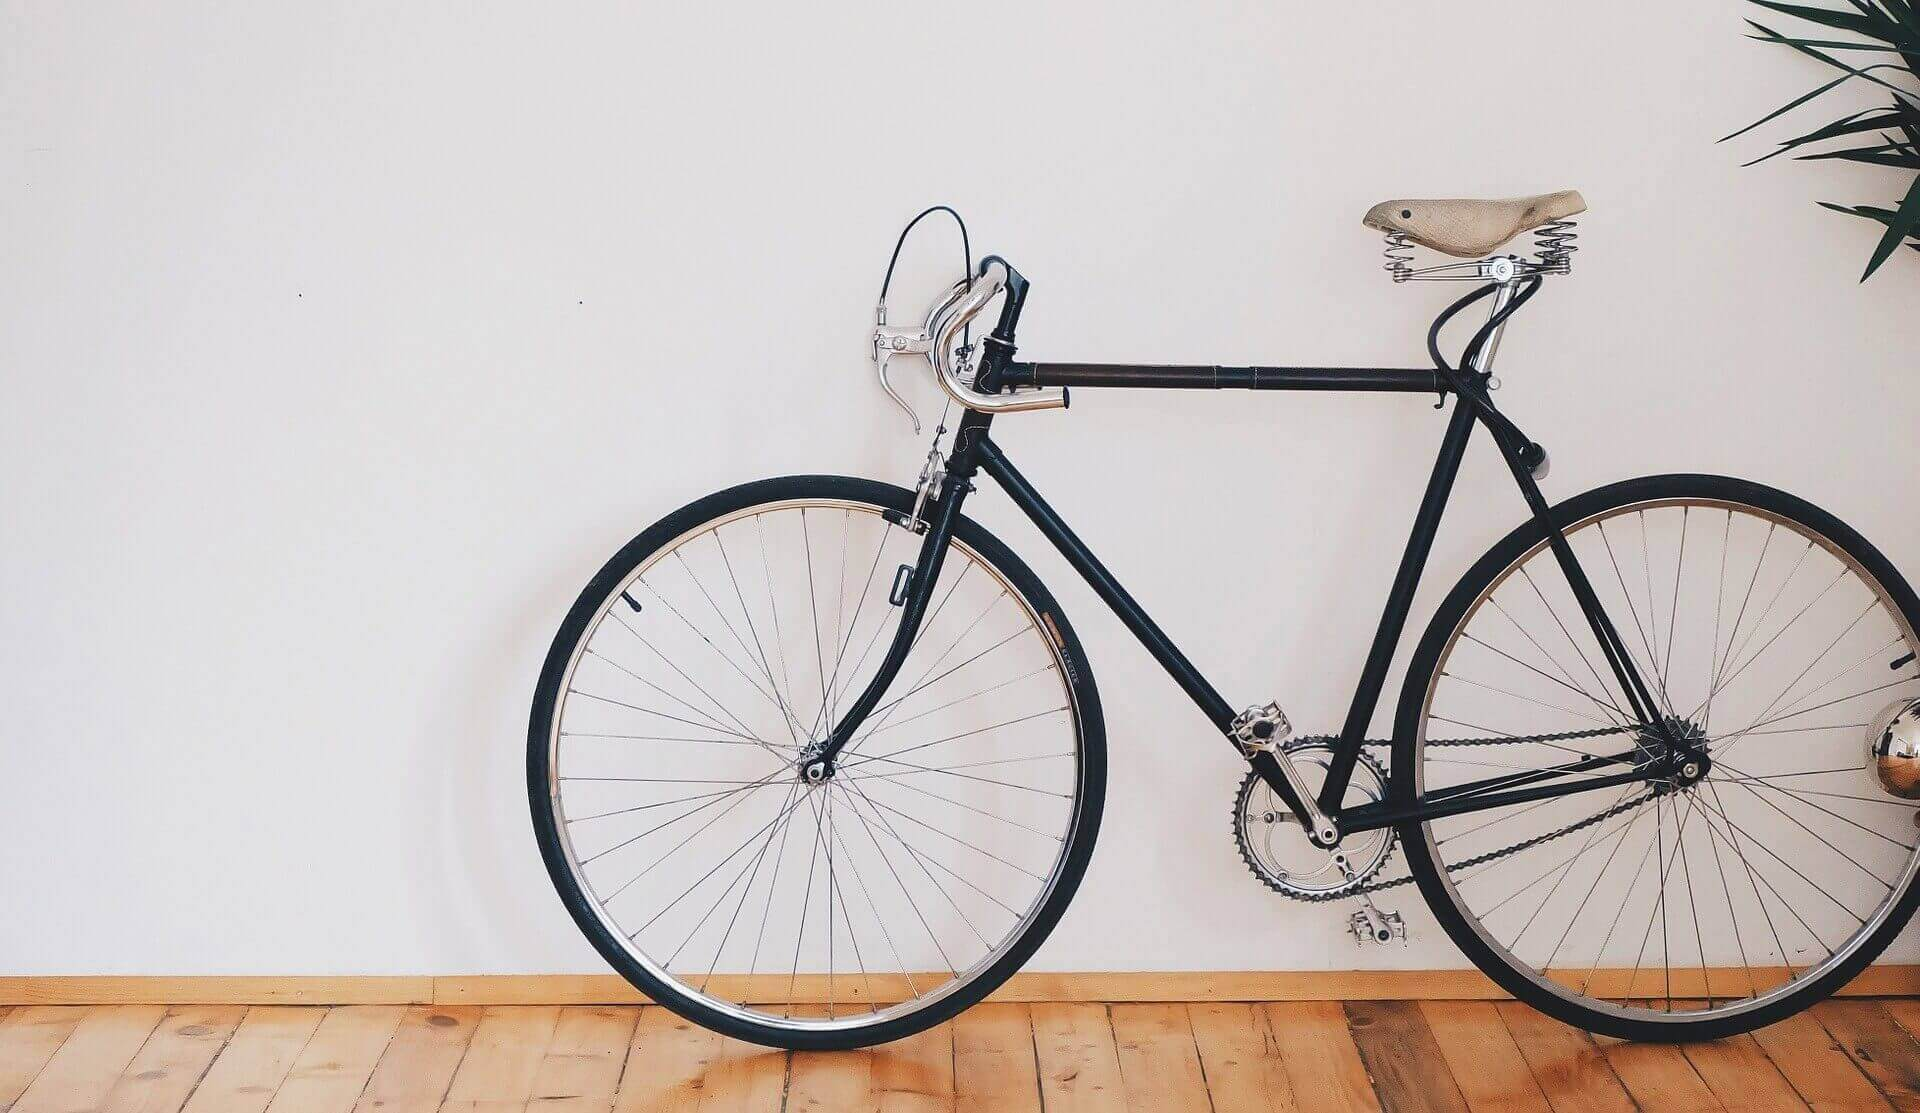 Pimp Your Bicycle With 3D Printing | All3DP